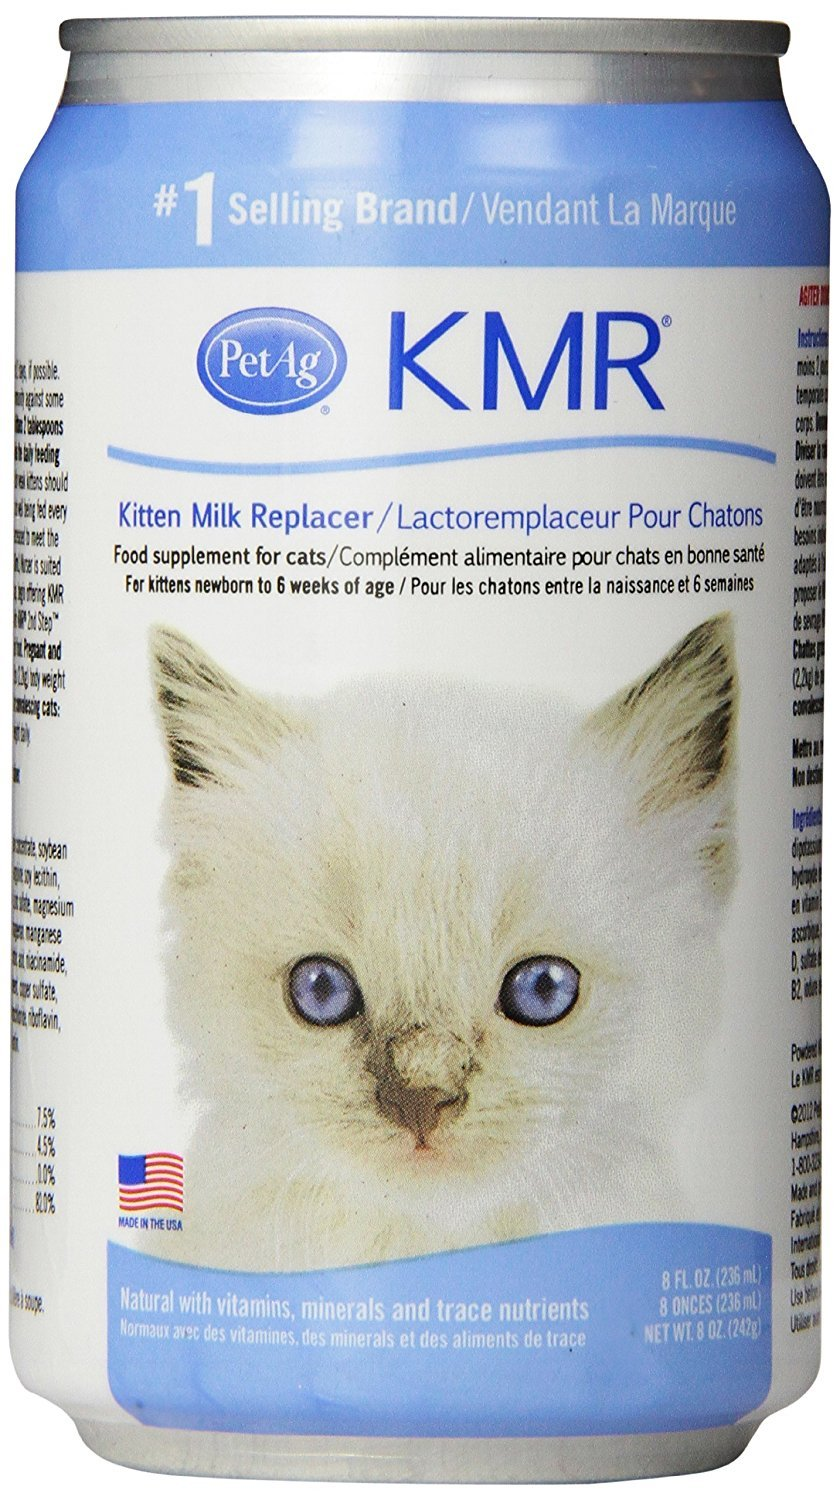 KMR Liquid Replacer for Kittens & Cats, 11oz cans, Case of 25